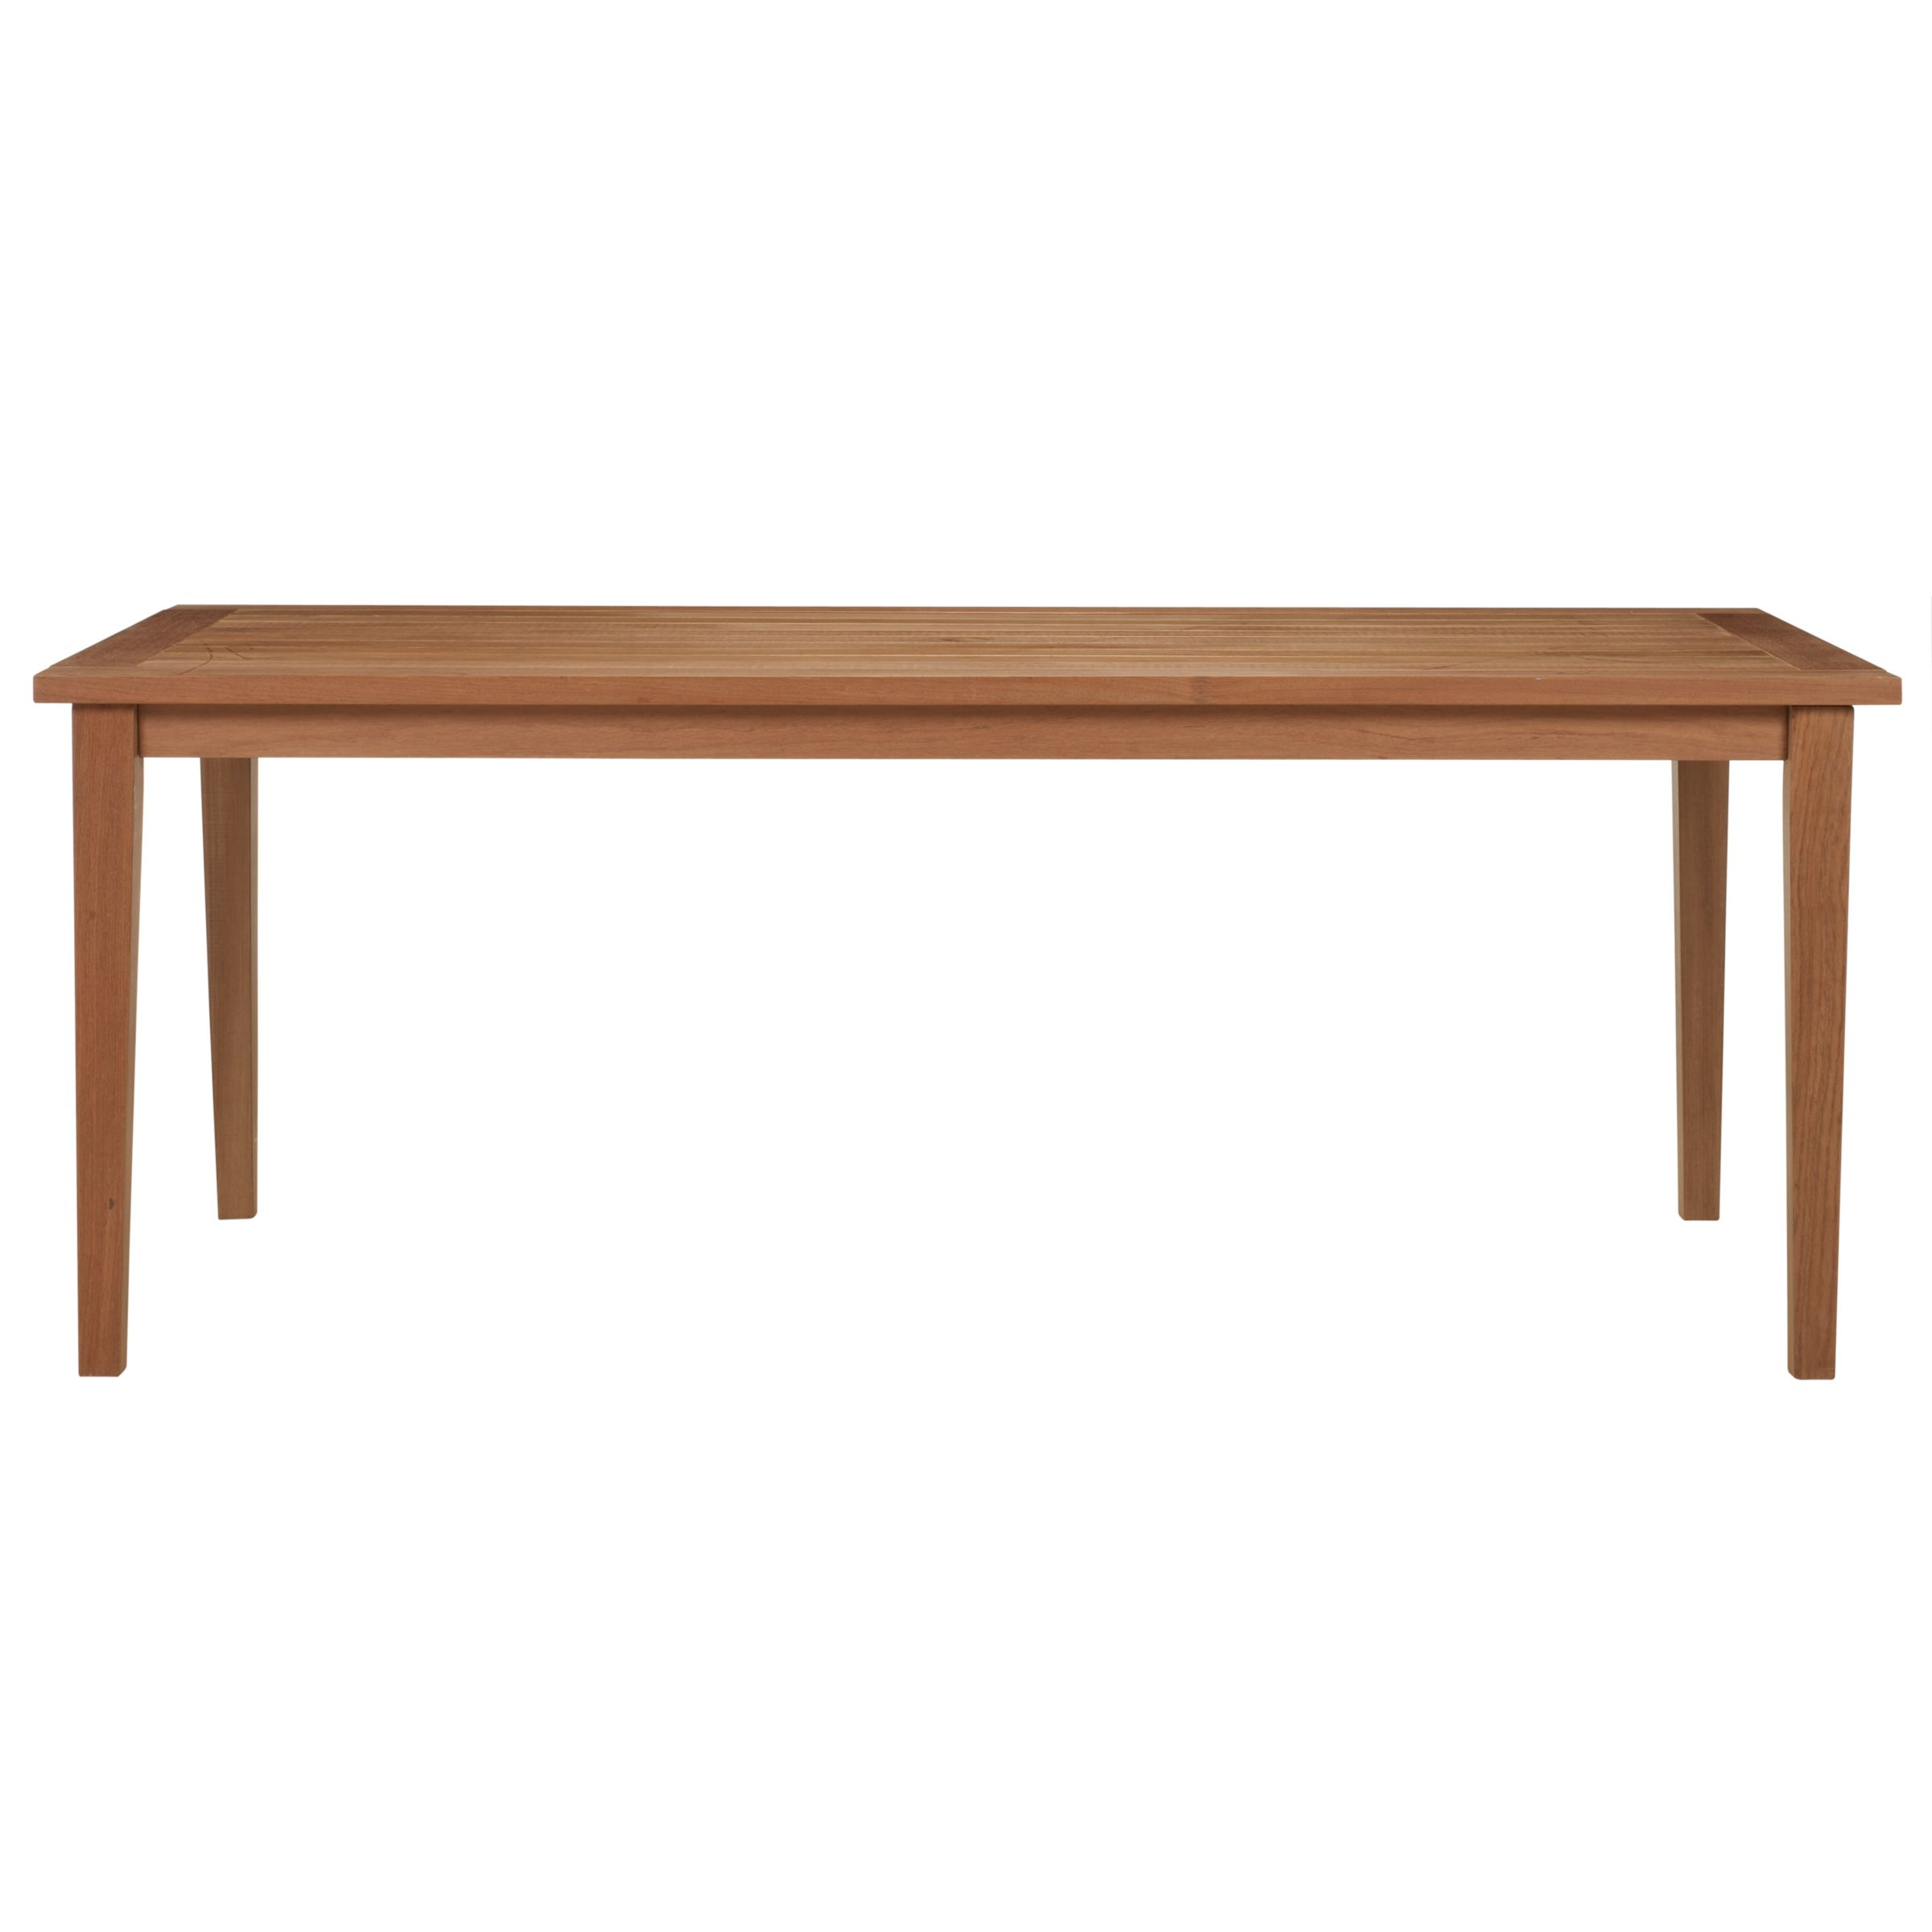 John lewis ripley garden dining table review compare prices buy online - Dining tables buy online ...